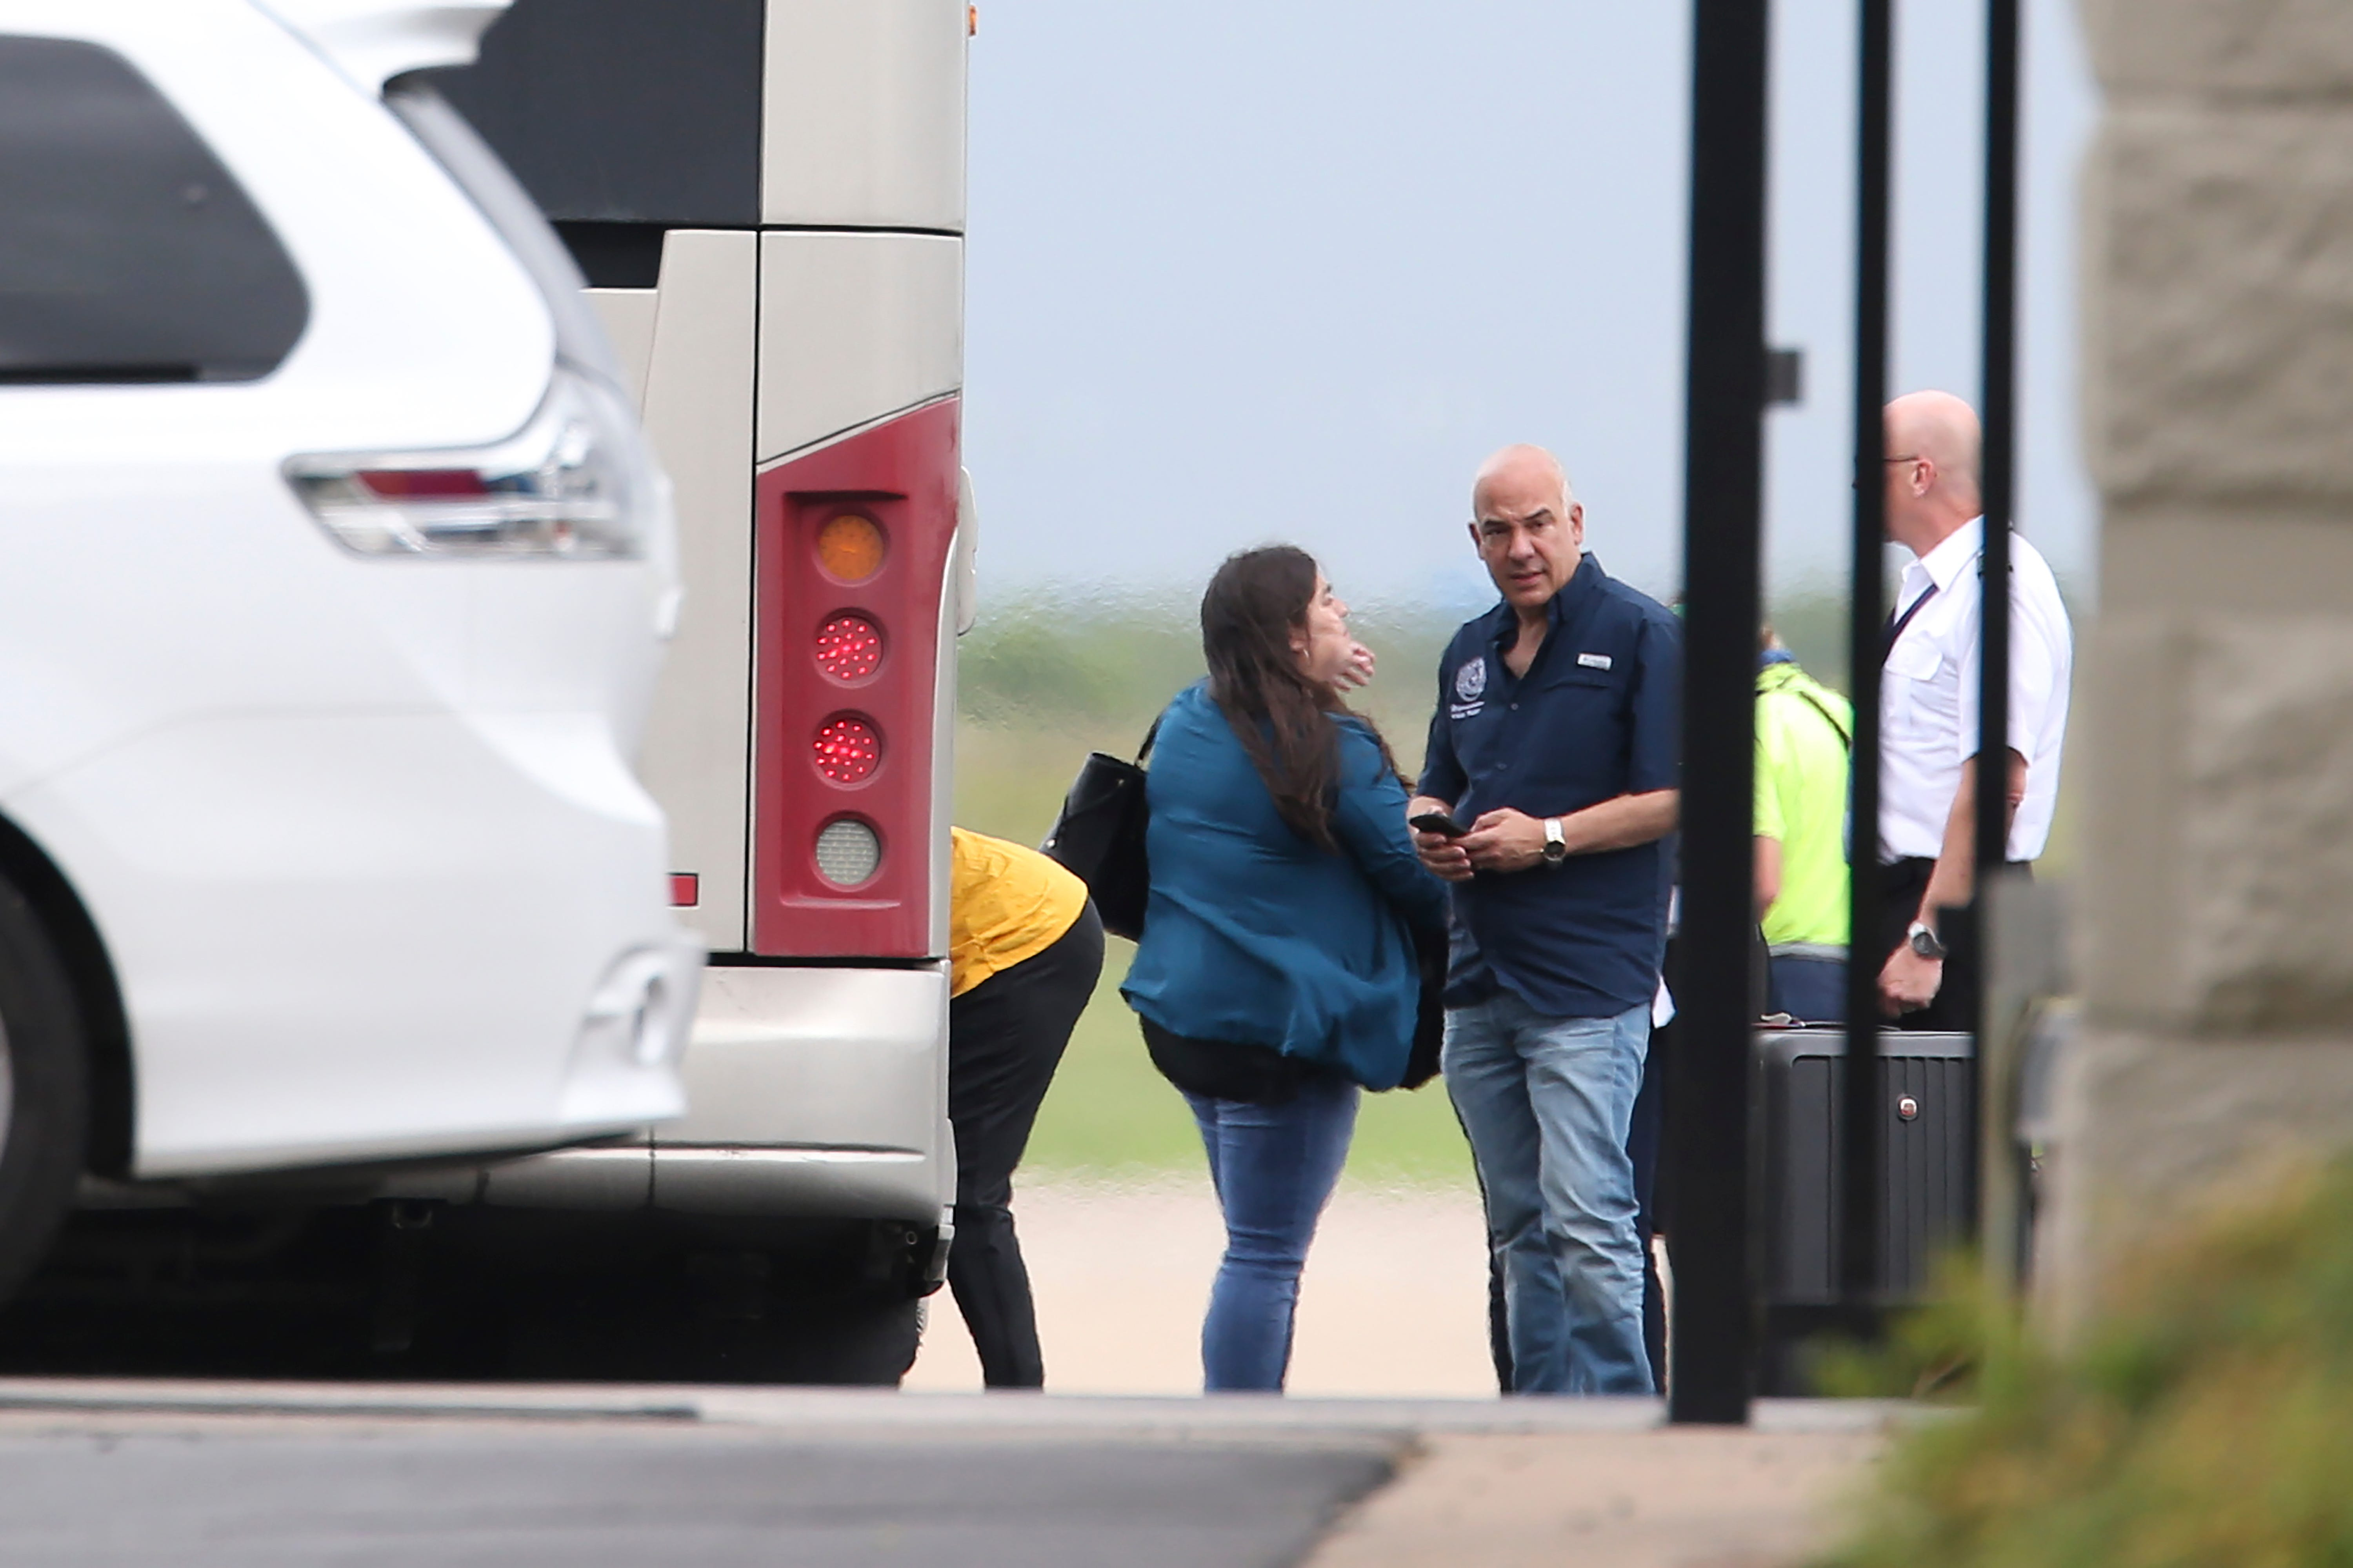 Texas House of Representative Chris Turner, (D-Arlington), arrives at Bergstrom International Airport along with more than 50 Democratic state representatives as they abscond by flying out of Austin, Texas to Washington, D.C. Monday, July 12, 2021.